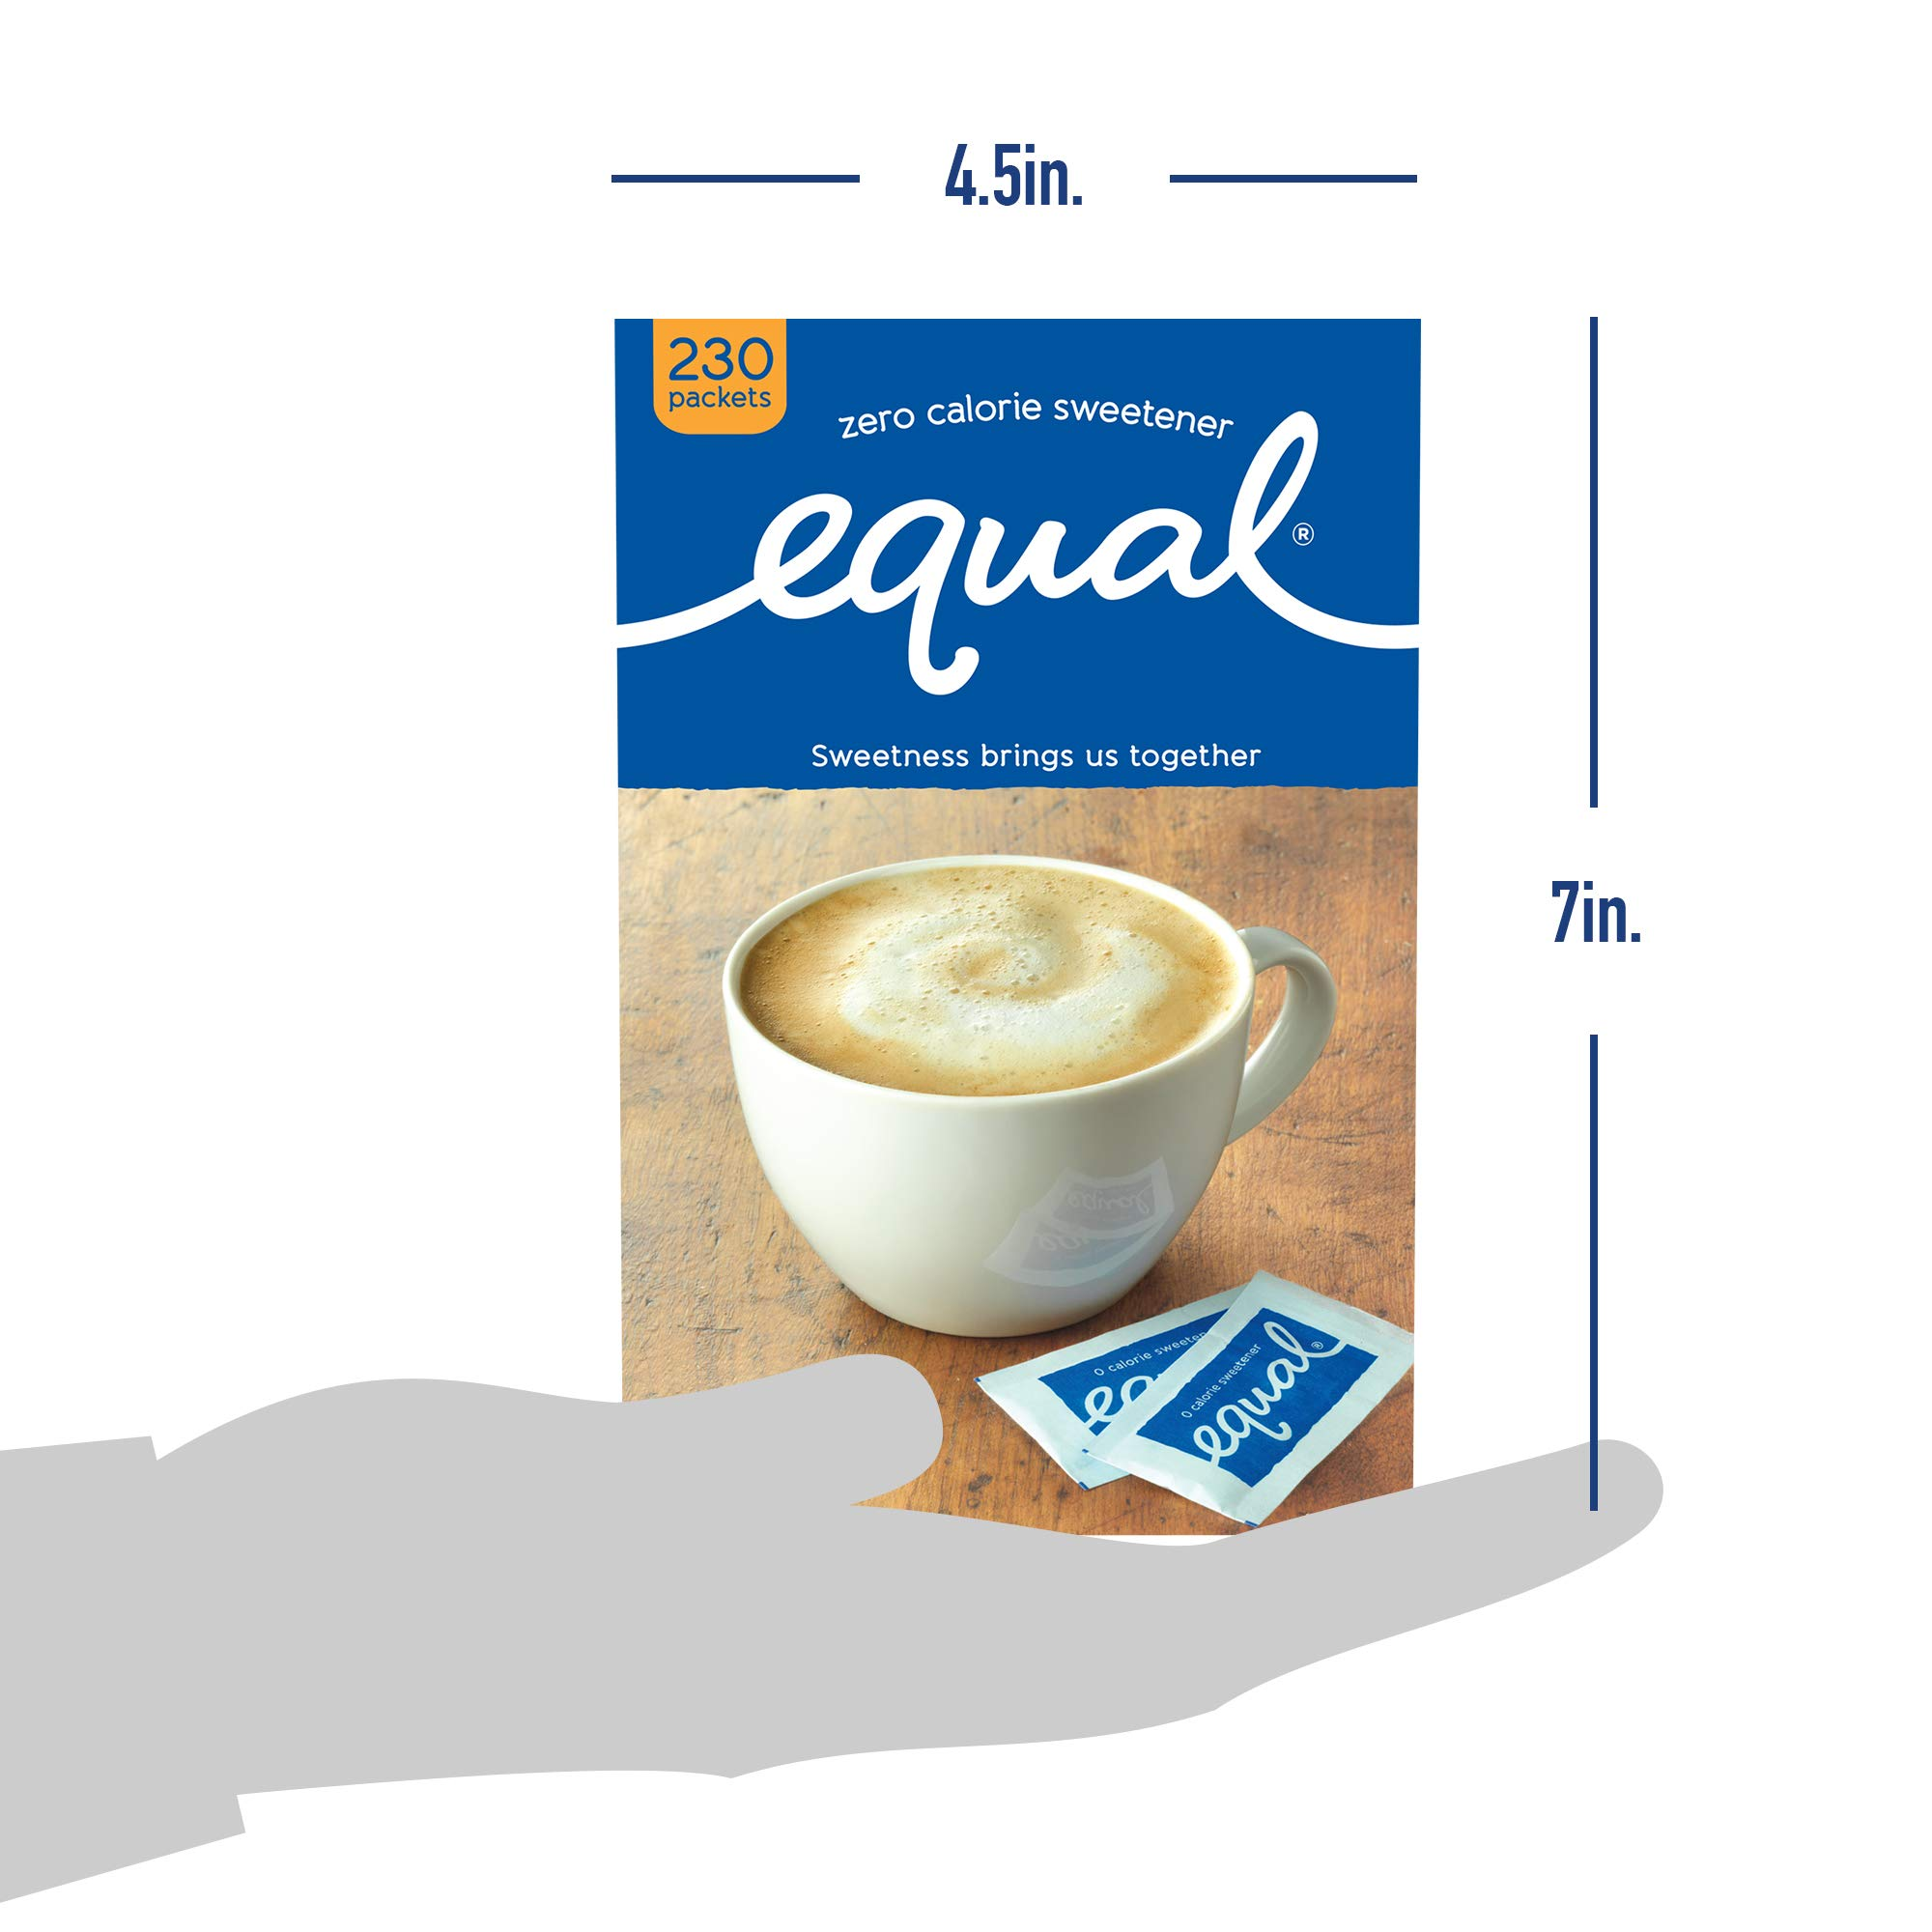 EQUAL 0 Calorie Sweetener, Sugar Substitute, Zero Calorie Sugar Alternative Sweetener Packets, Sugar Alternative, 230 Count (Pack of 3) by Equal (Image #9)